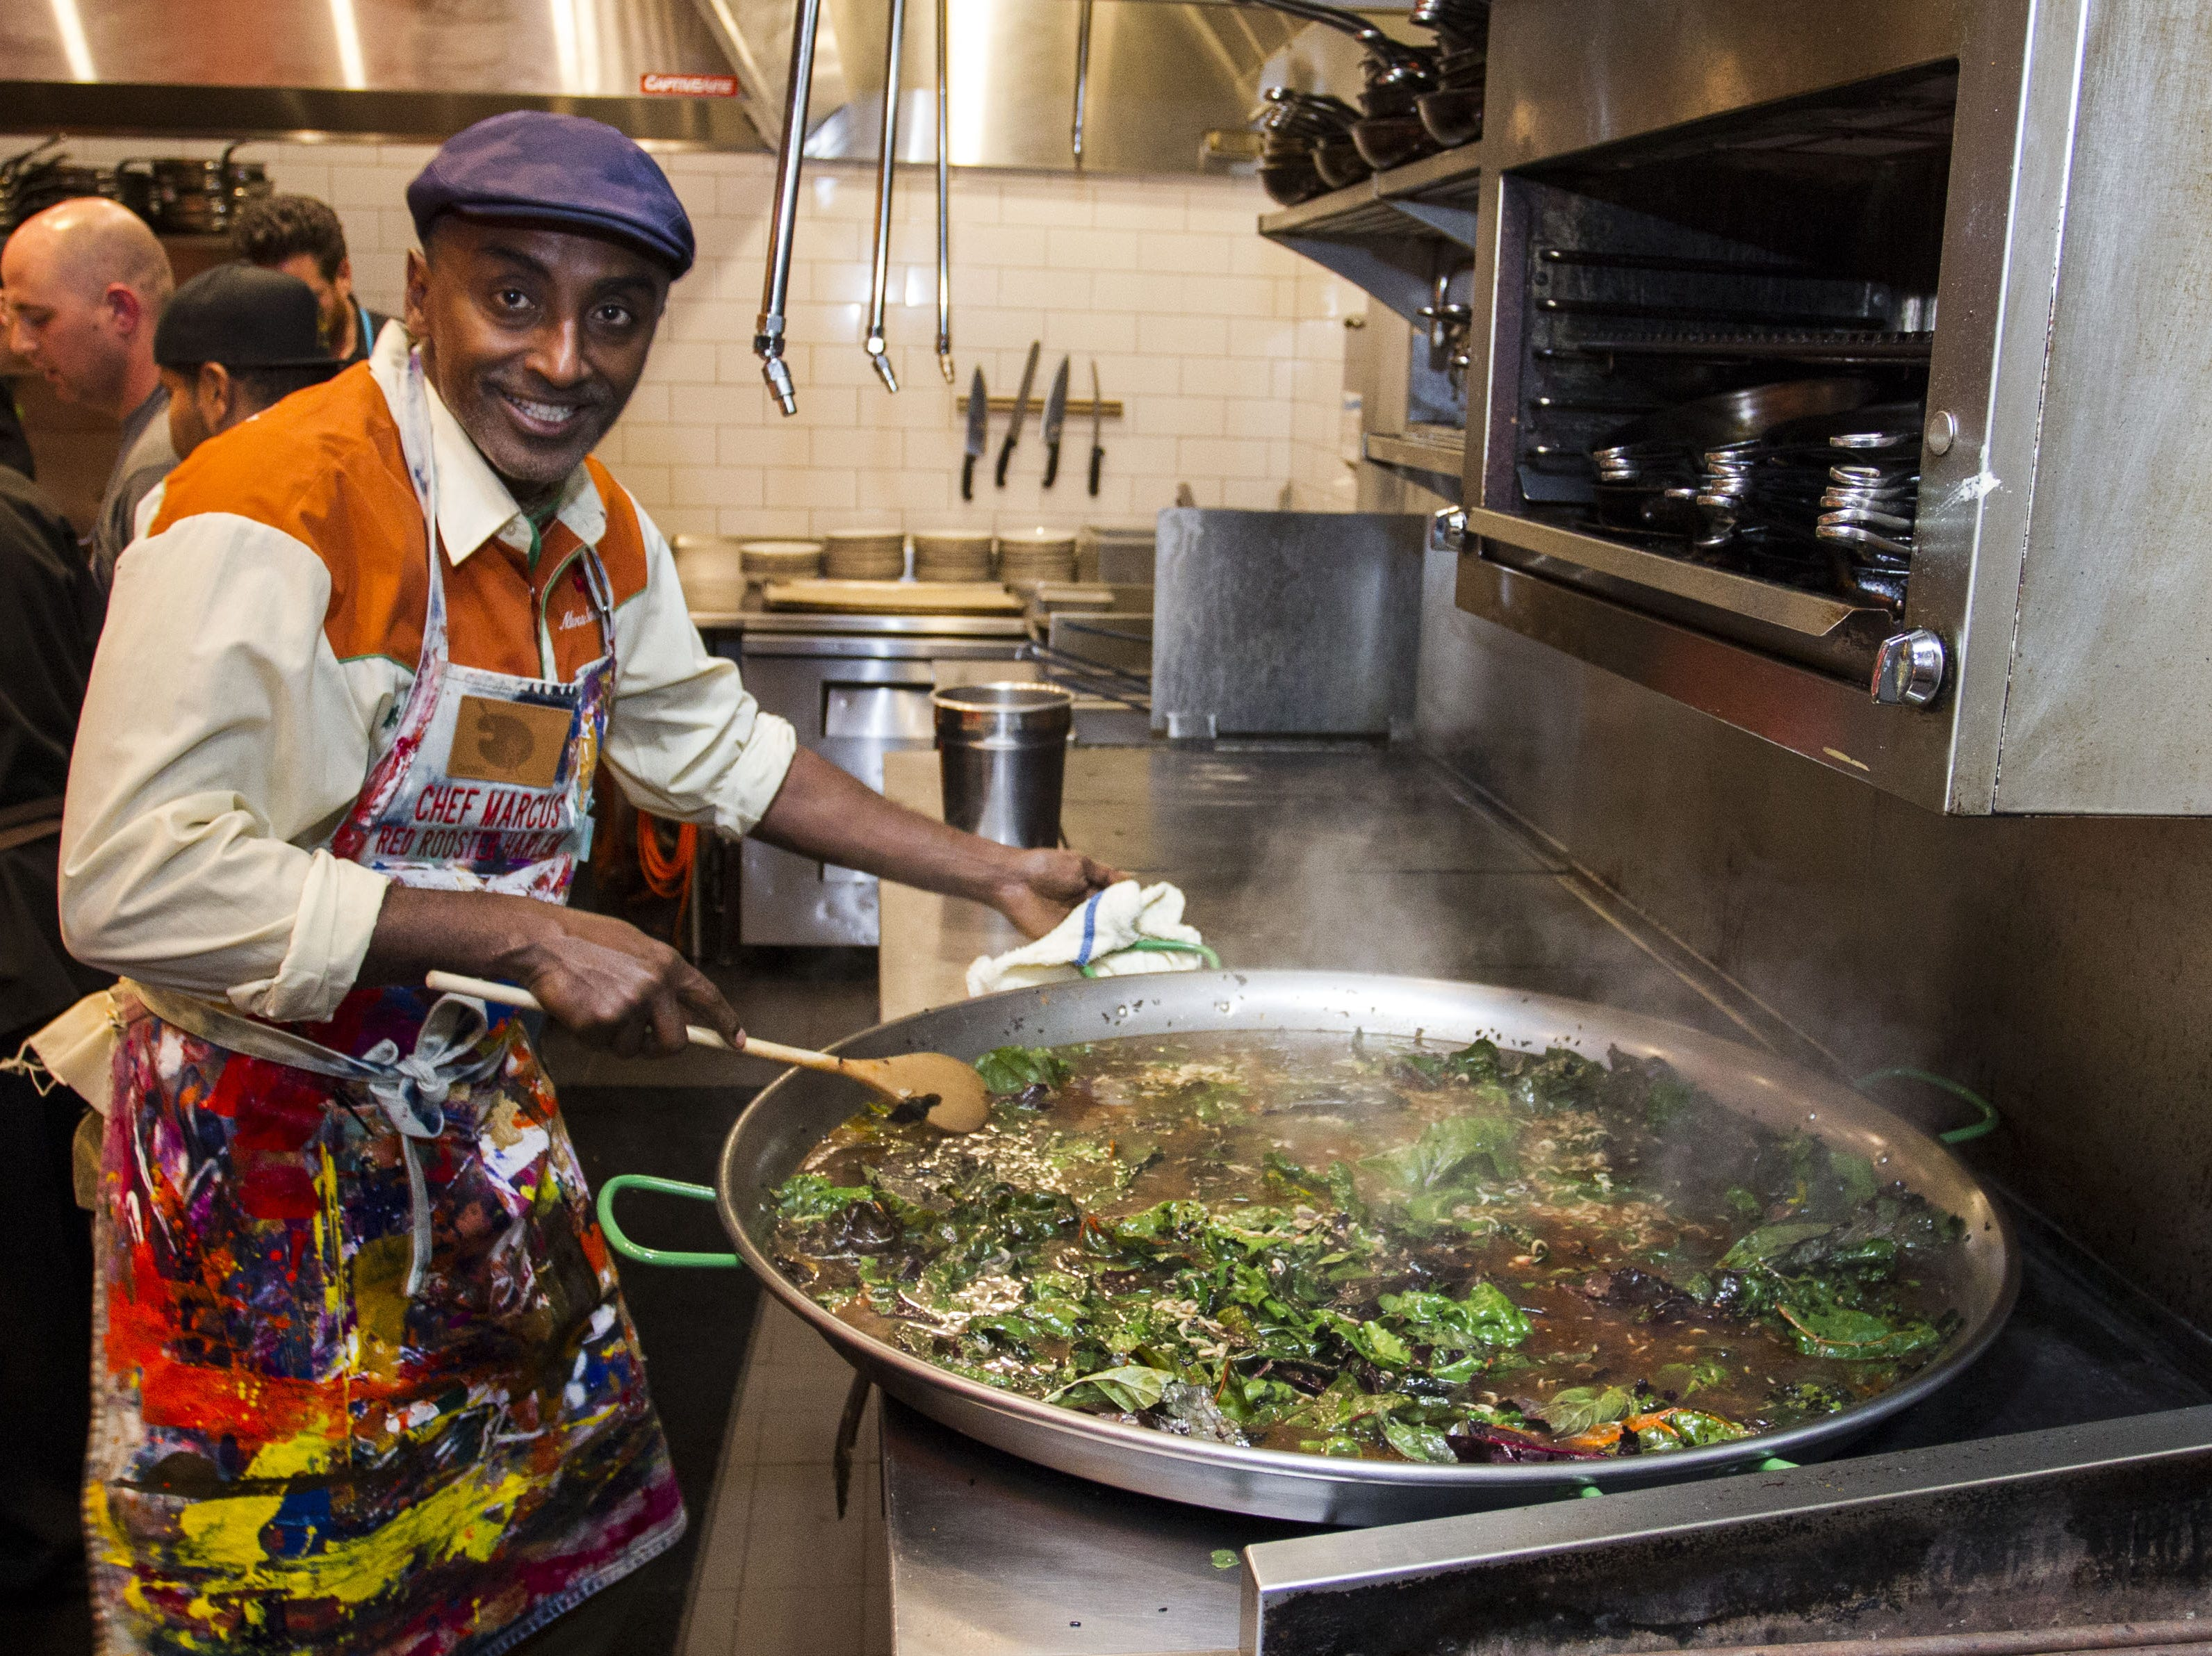 Chef Marcus Samuelsson prepares paella during the exclusive kickoff dining event at Mora Italian for azcentral Wine & Food Experience.